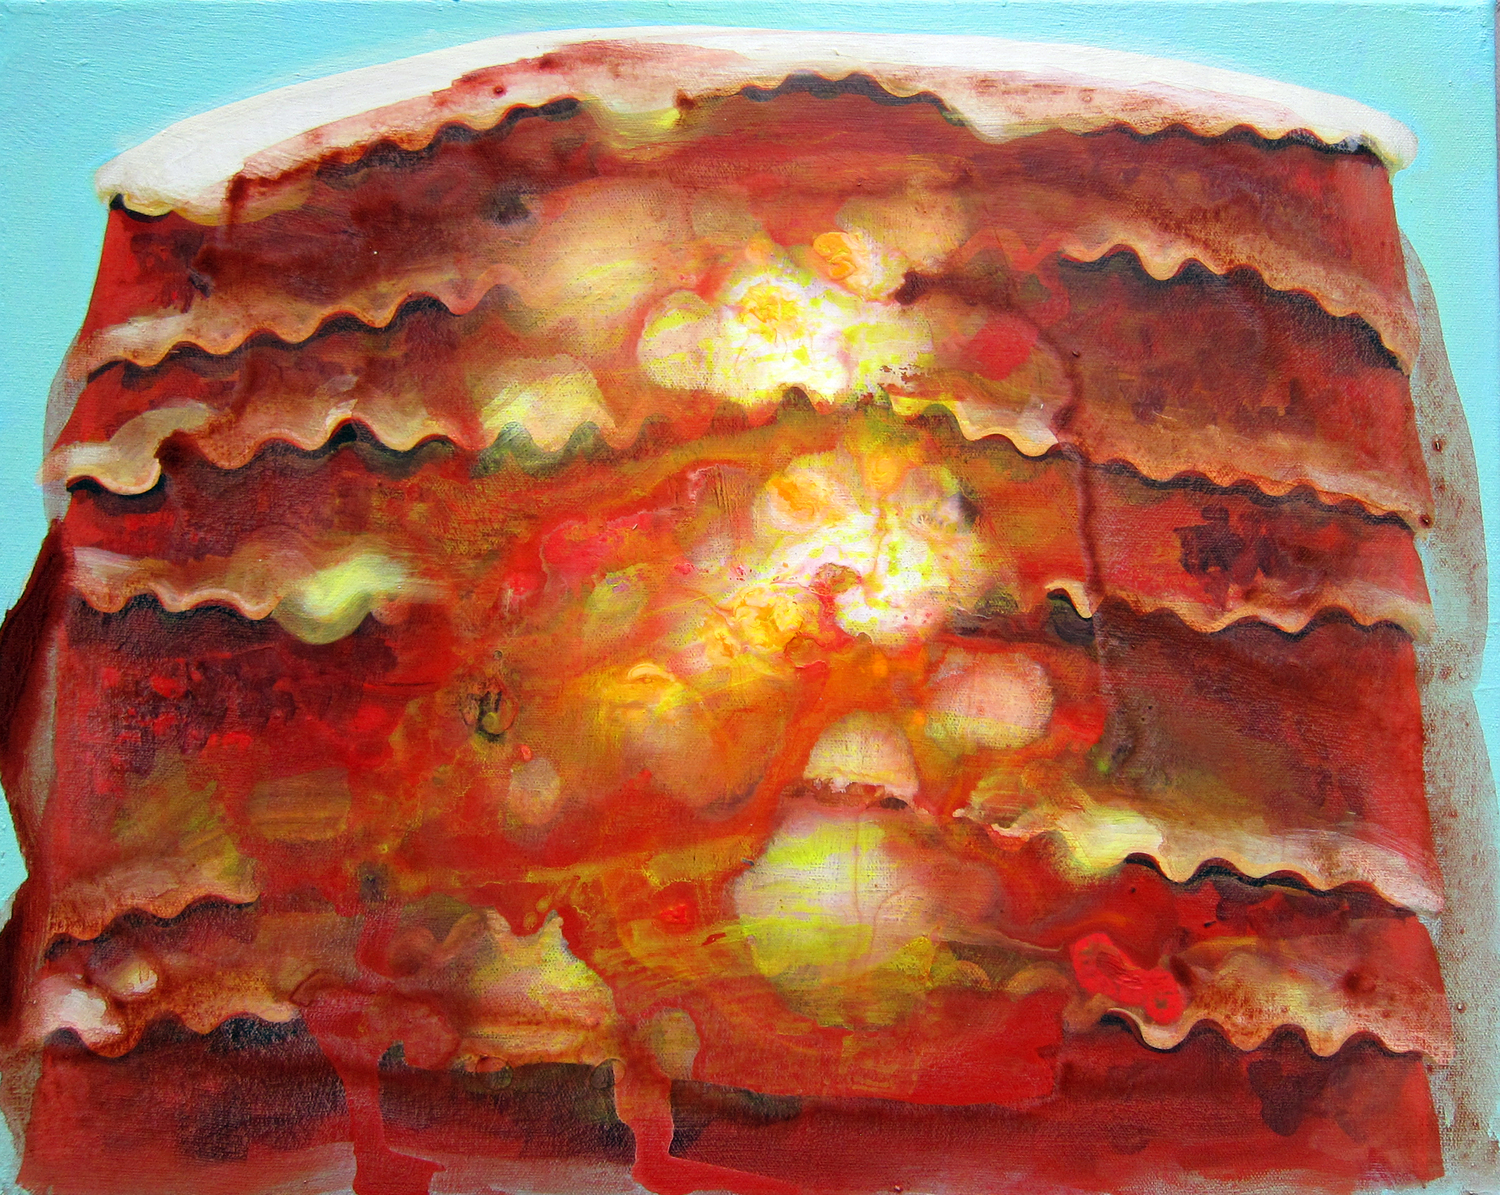 Lasagna, 2015, acrylic on canvas, 14 x 18 inches. Jennifer Coates.